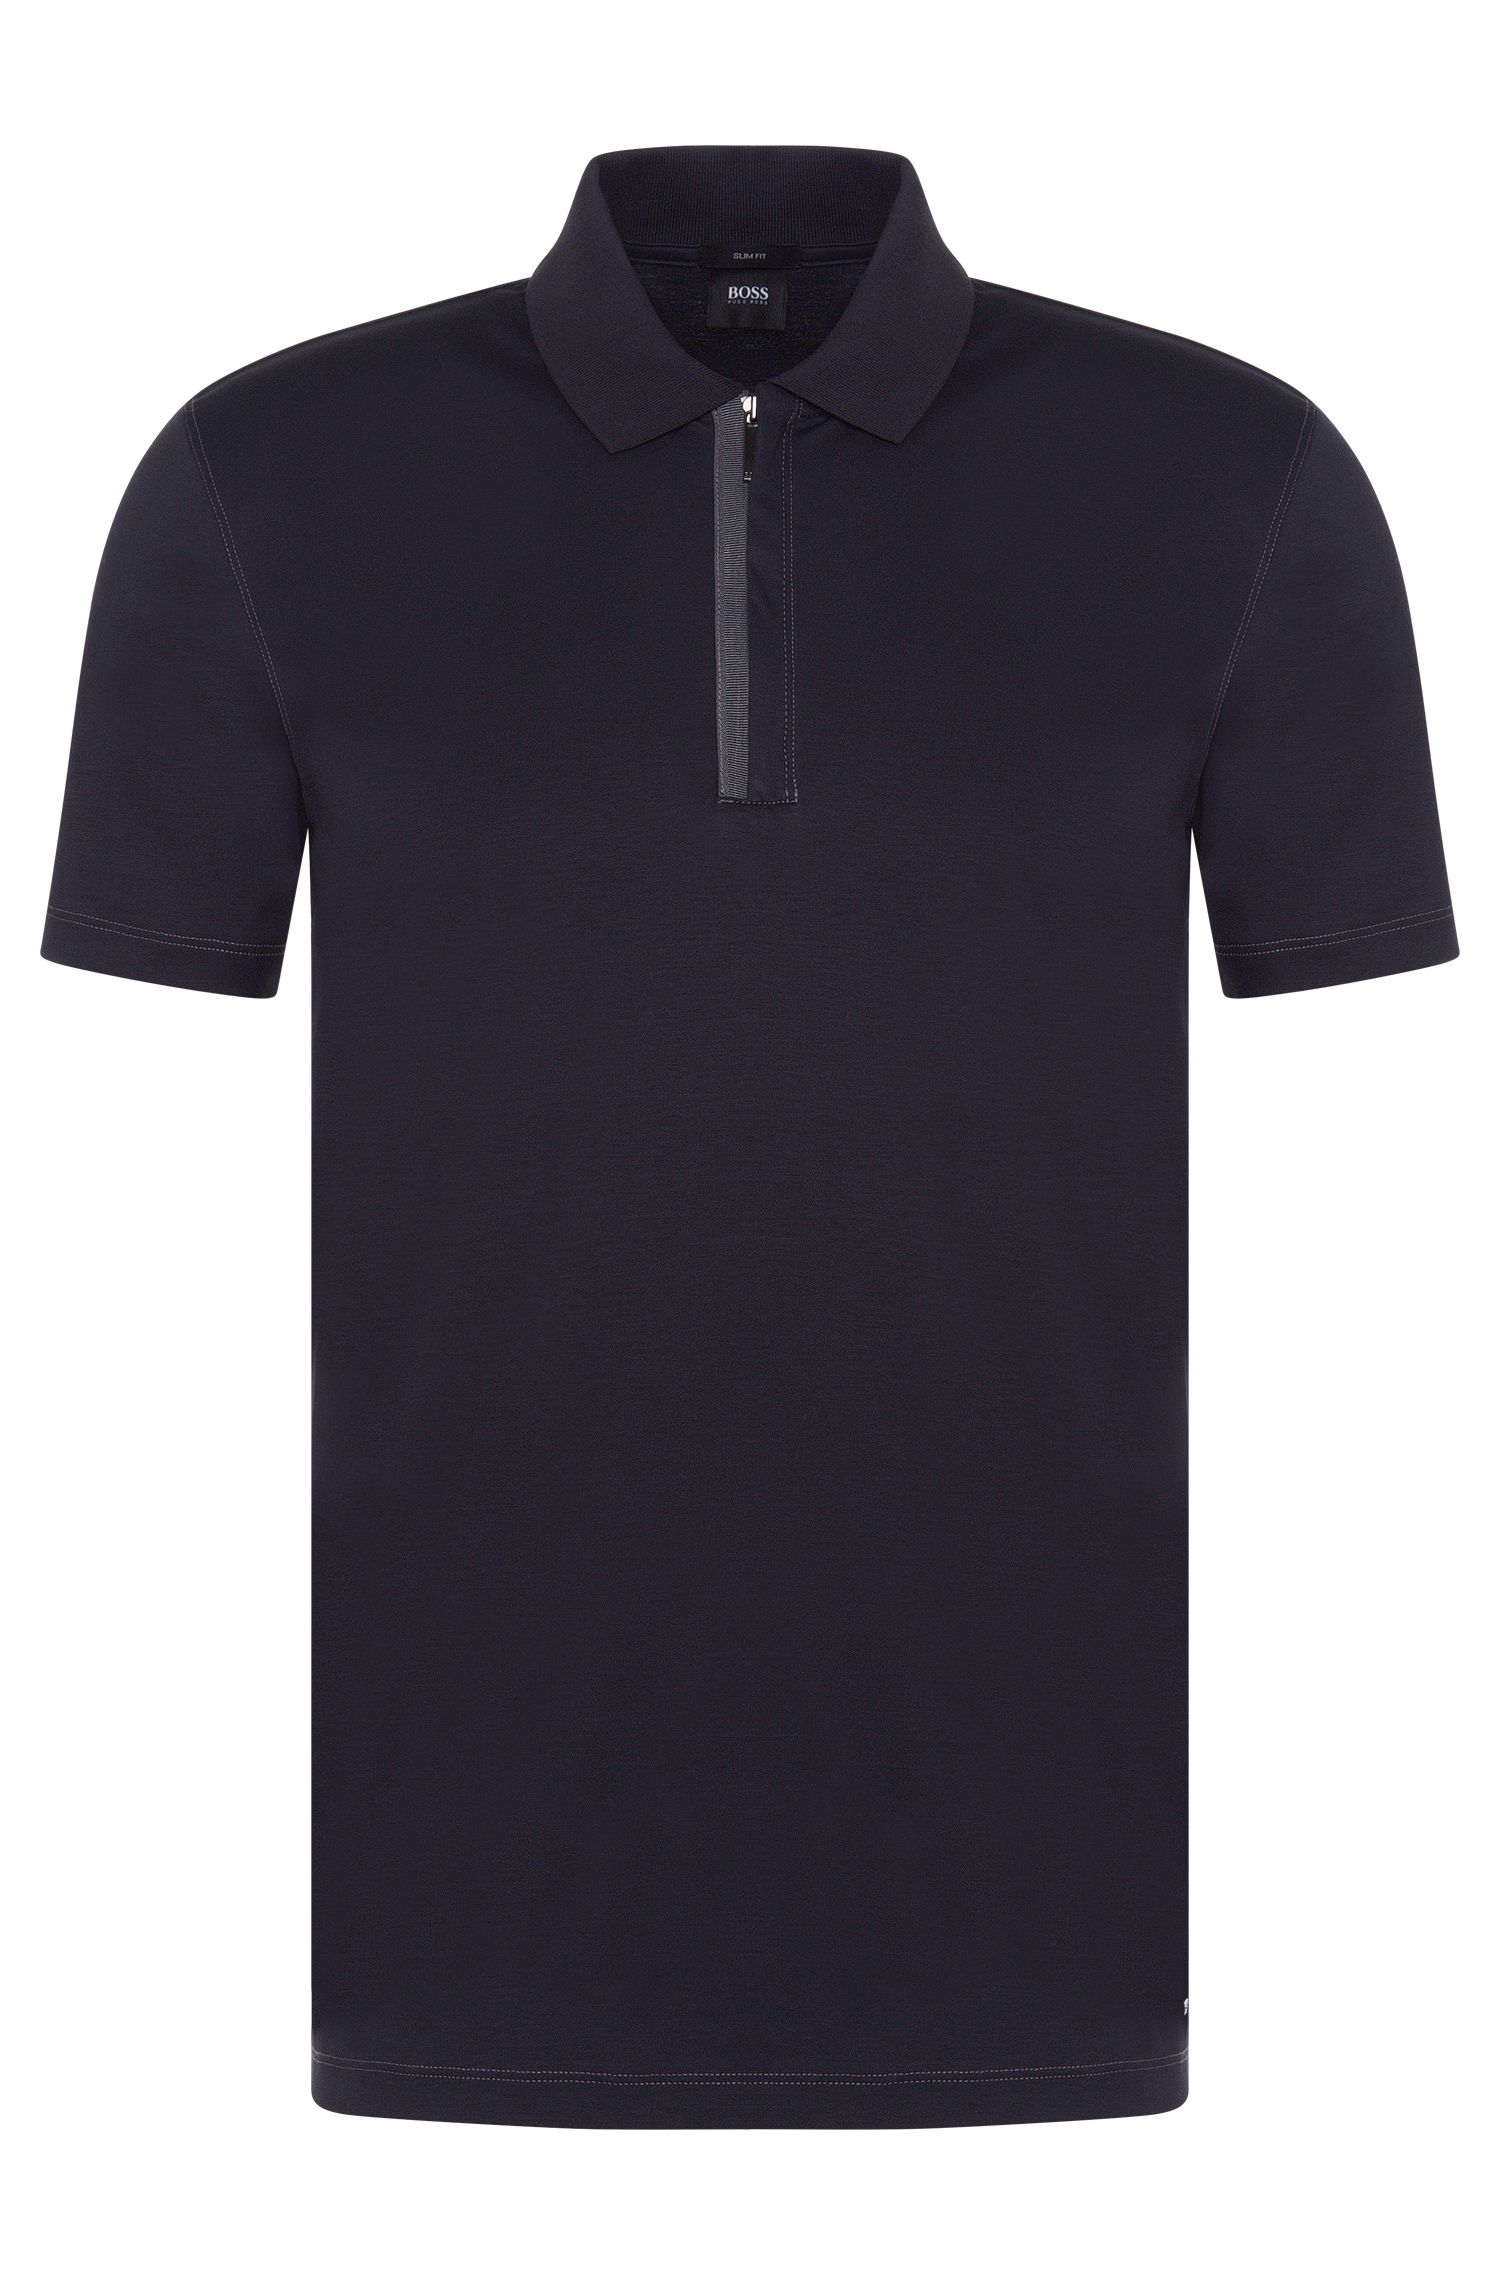 Cotton Polo Shirt, Slim Fit | Plater